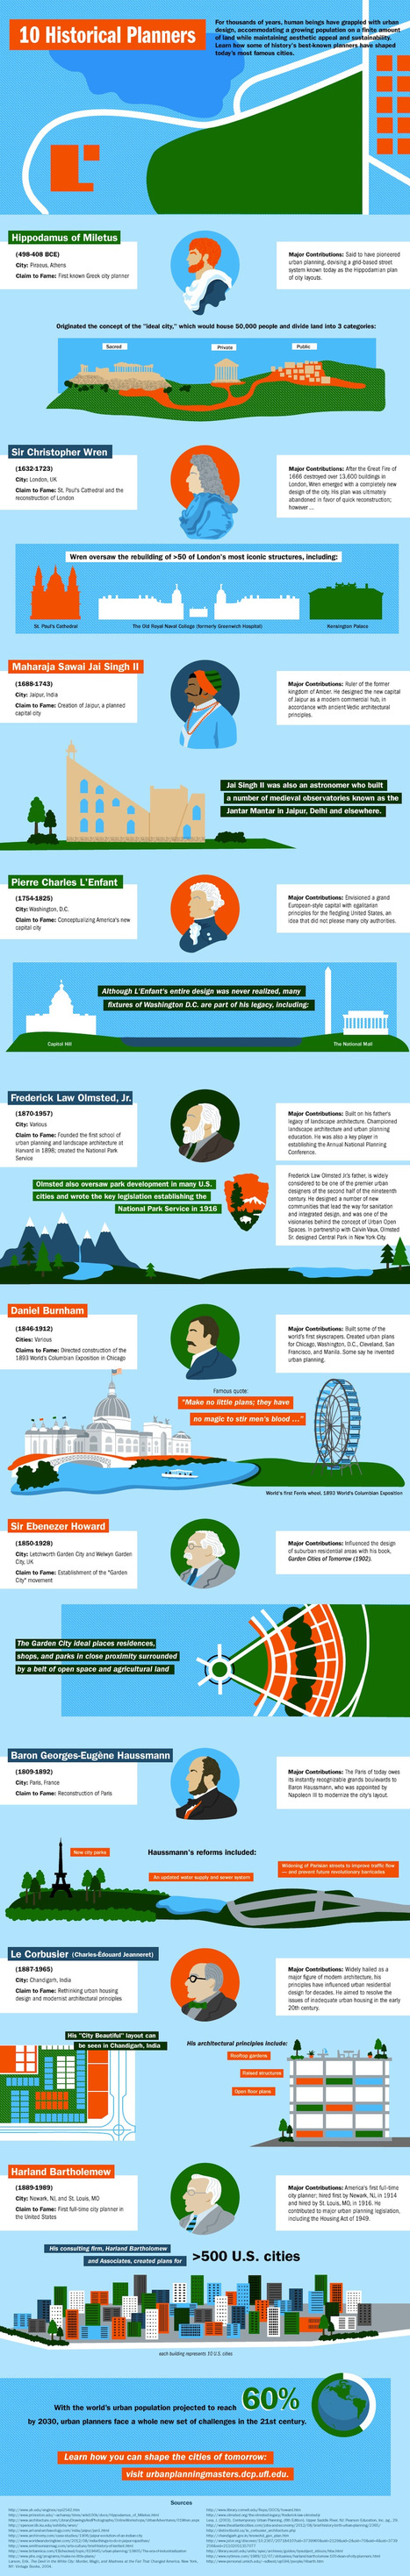 Infographic: How 10 Historical Planners Have Shaped Today's Cities | Global Growth Relations | Scoop.it